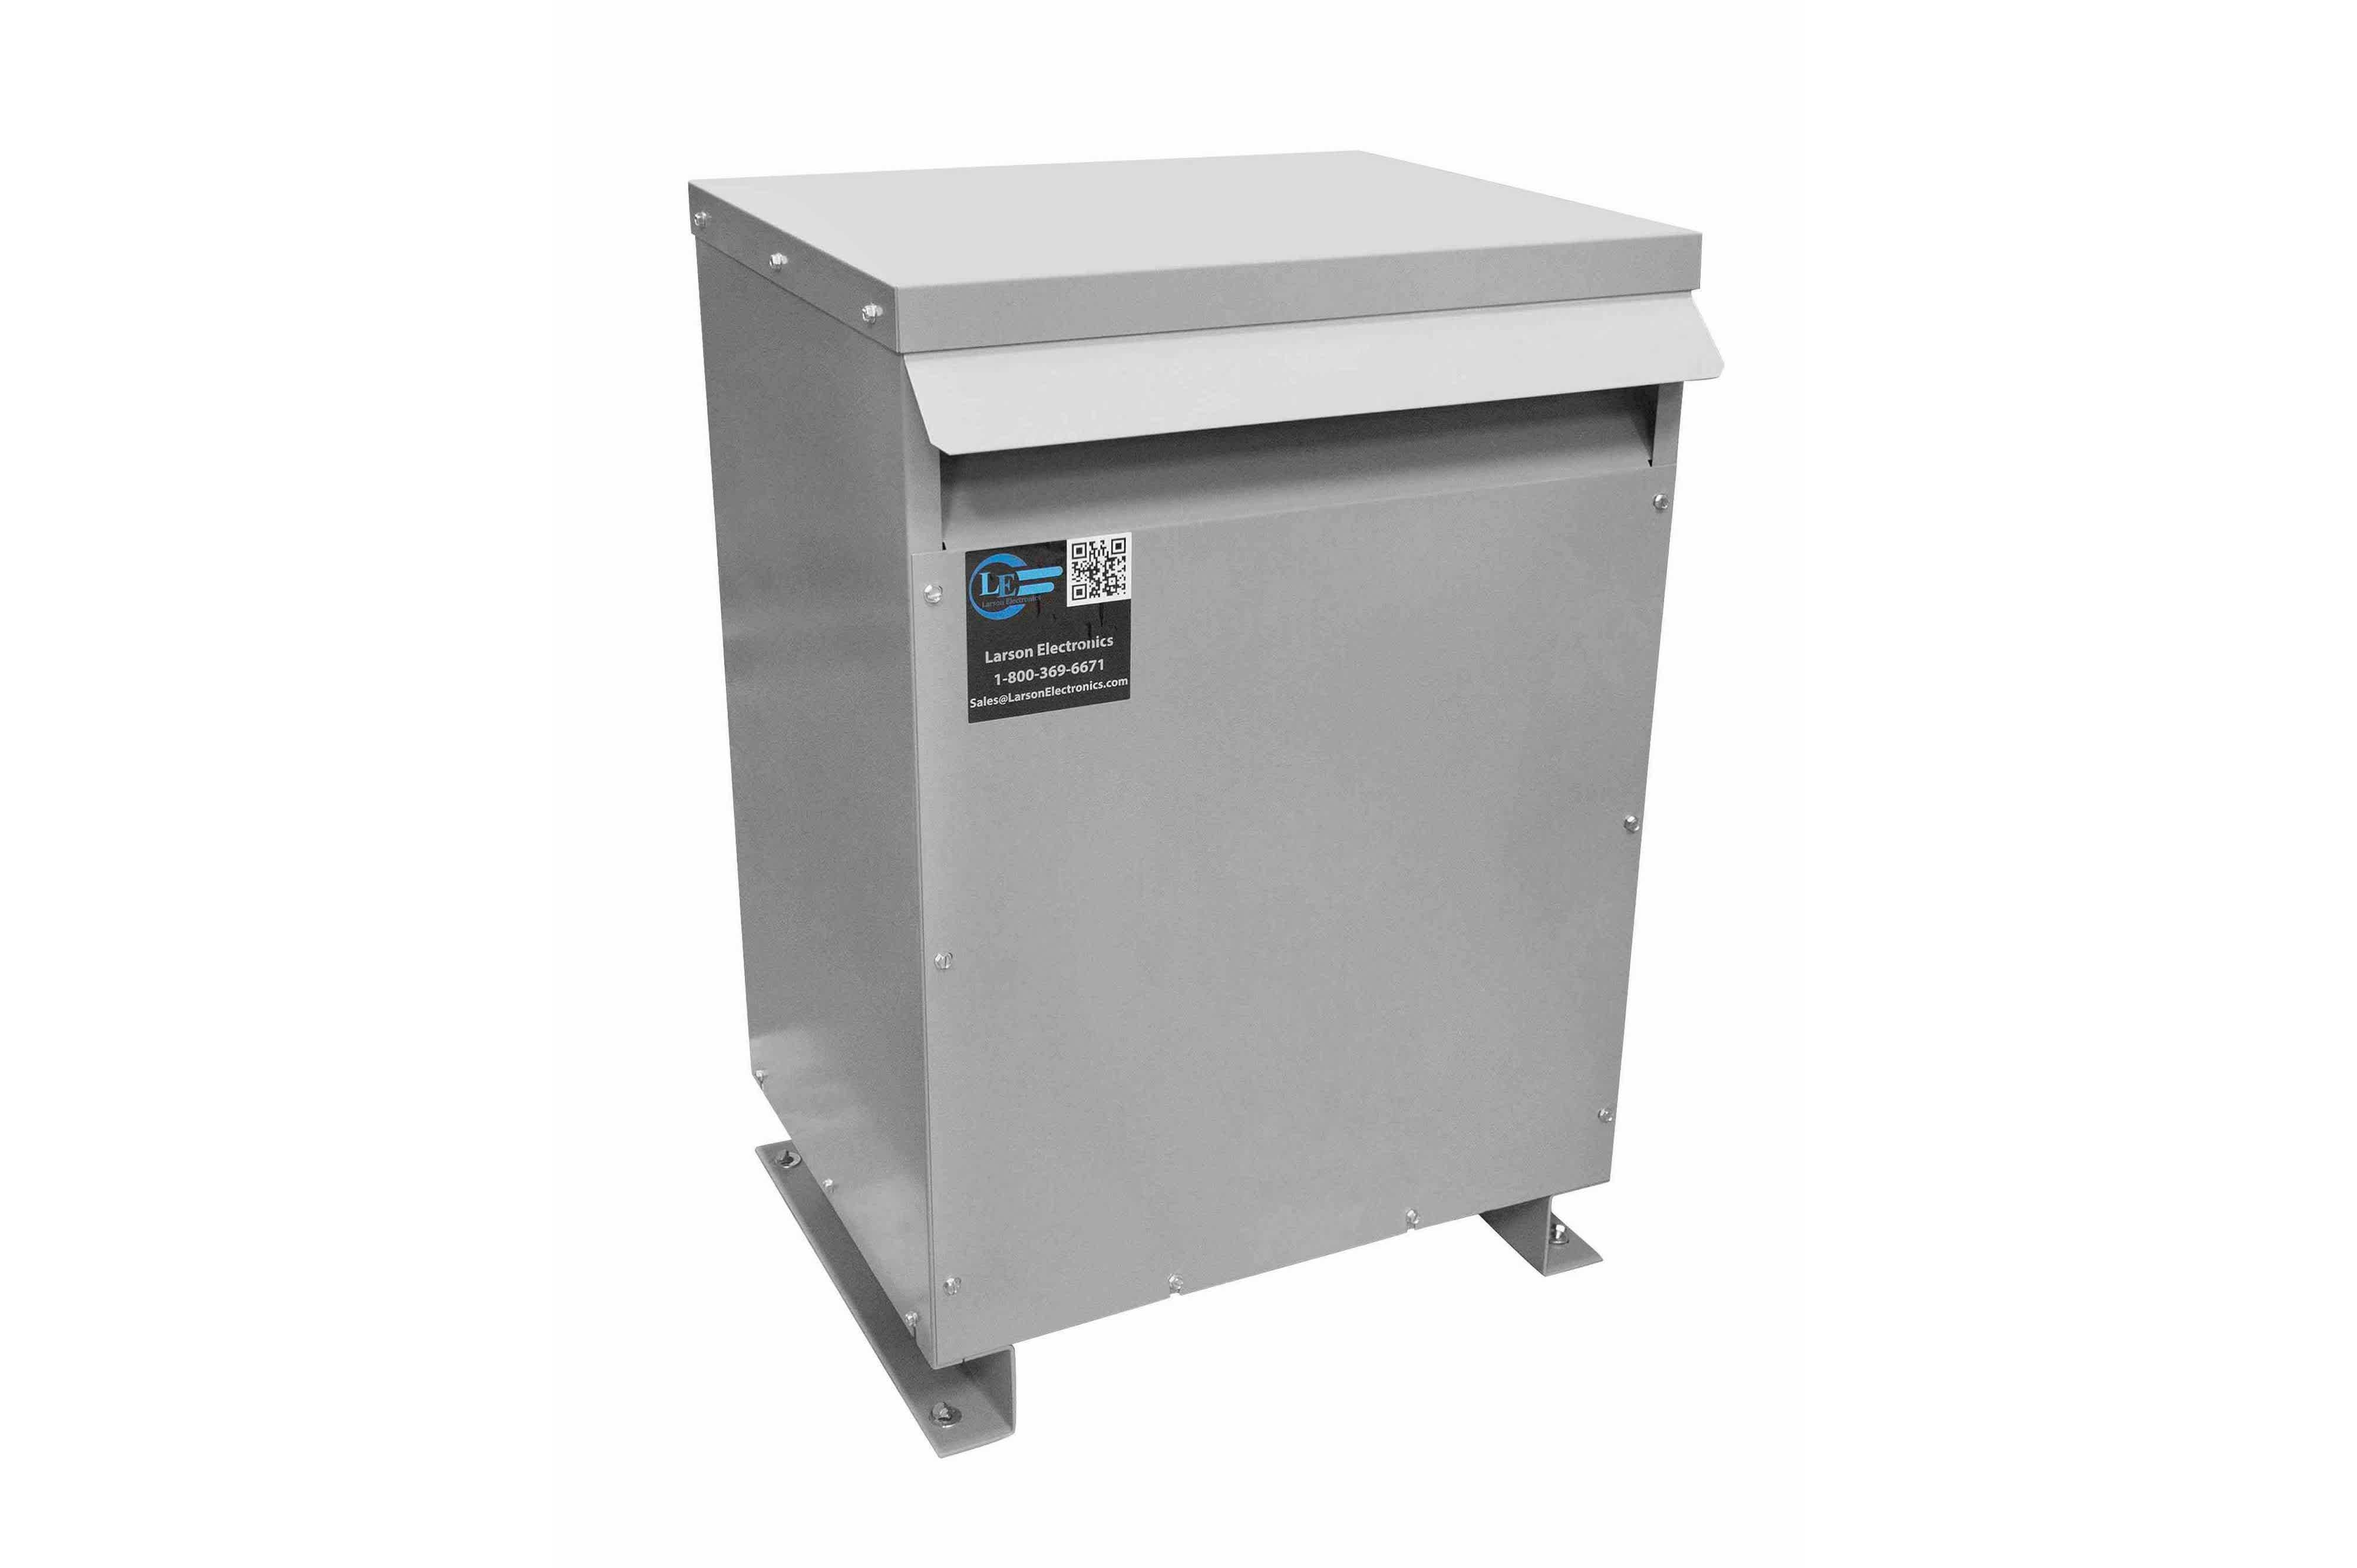 30 kVA 3PH Isolation Transformer, 575V Delta Primary, 208V Delta Secondary, N3R, Ventilated, 60 Hz